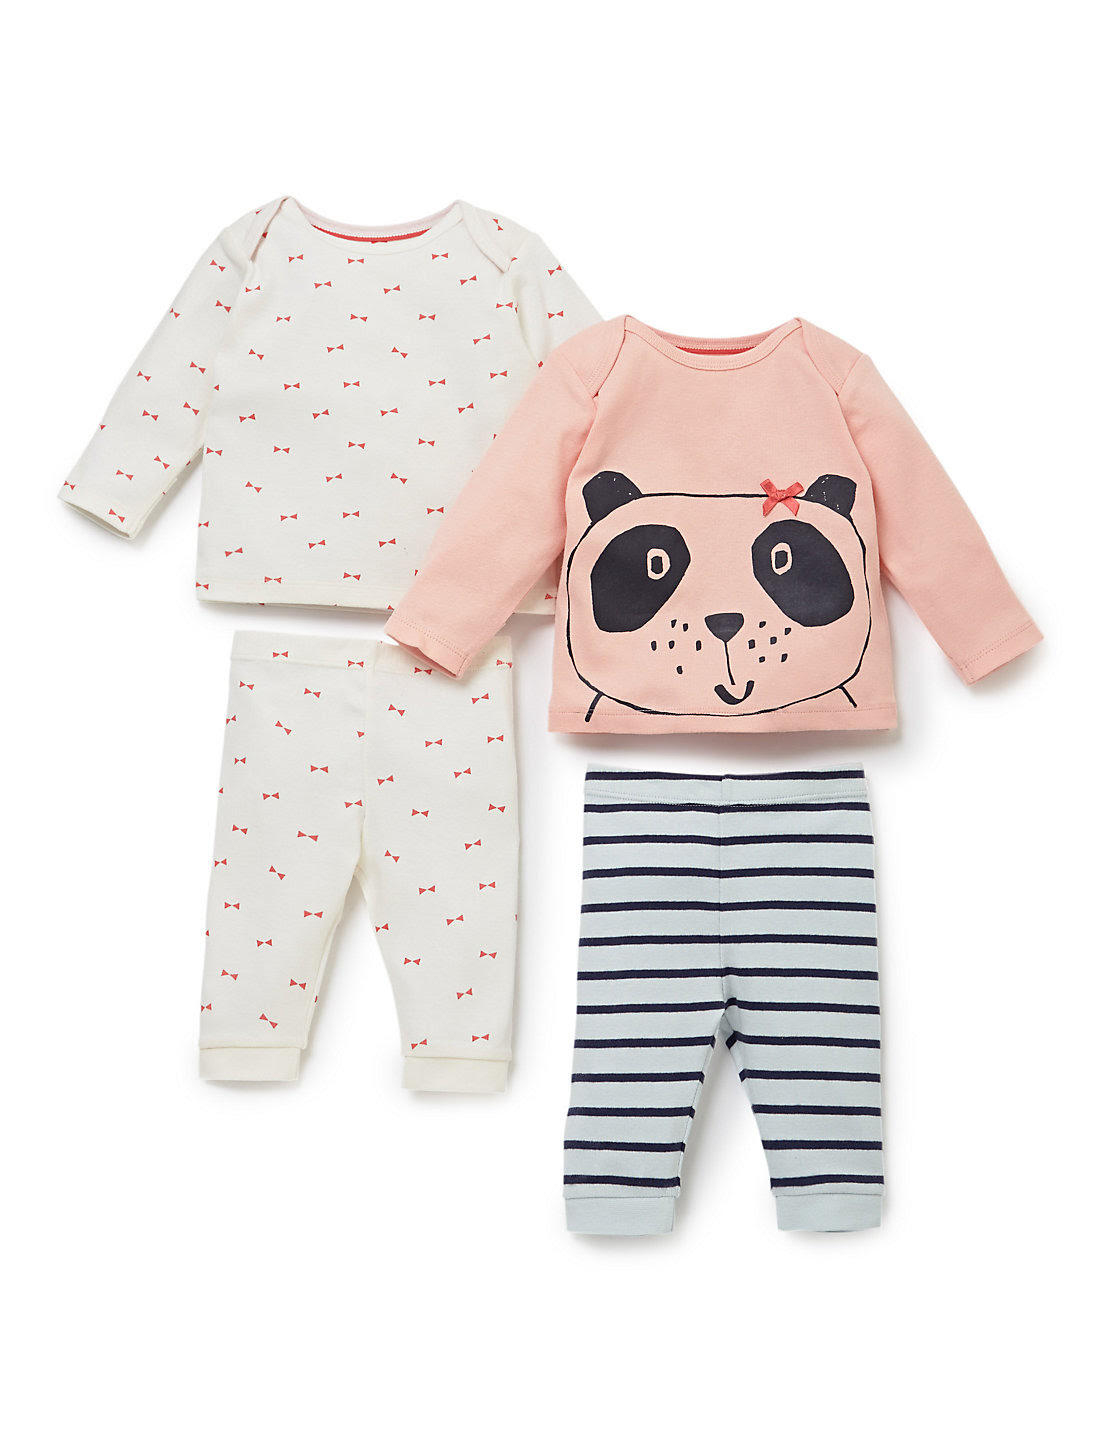 4 Piece Pure Cotton Assorted Pyjamas